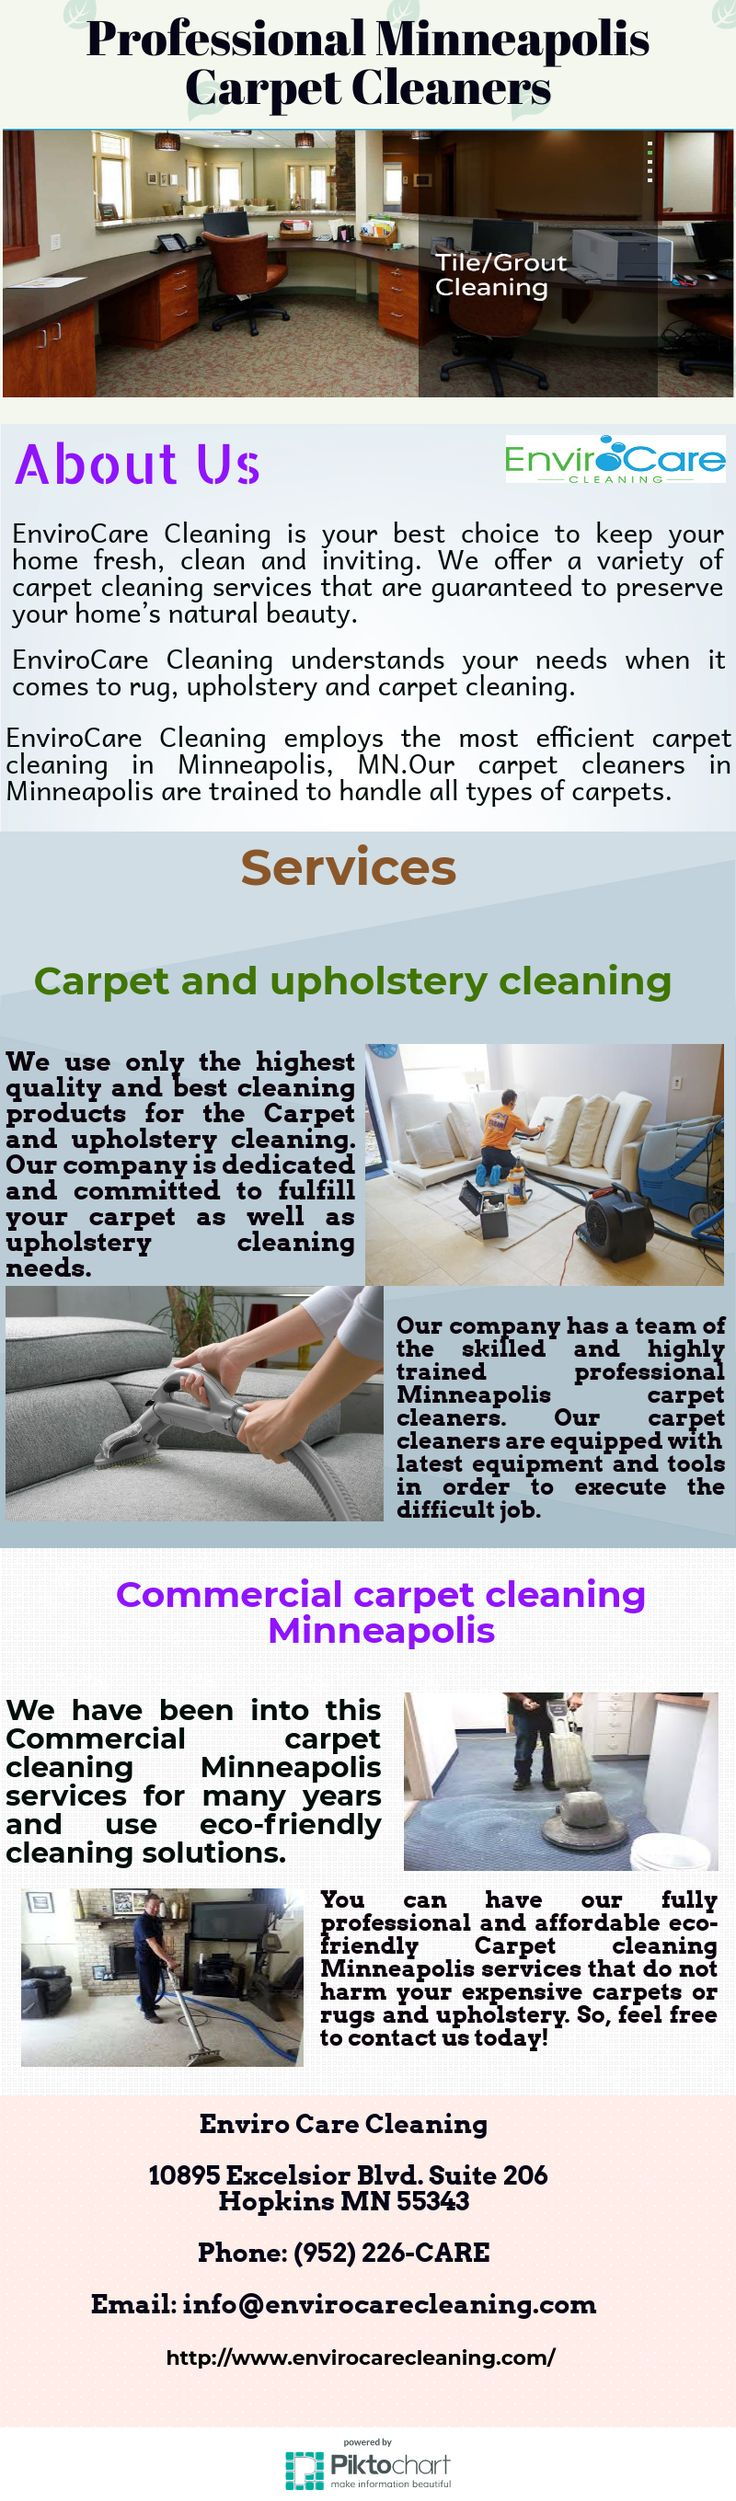 Fully professional and affordable eco friendly Carpet cleaning Minneapolis  services. The 25  best Affordable carpet cleaning ideas on Pinterest   Gray